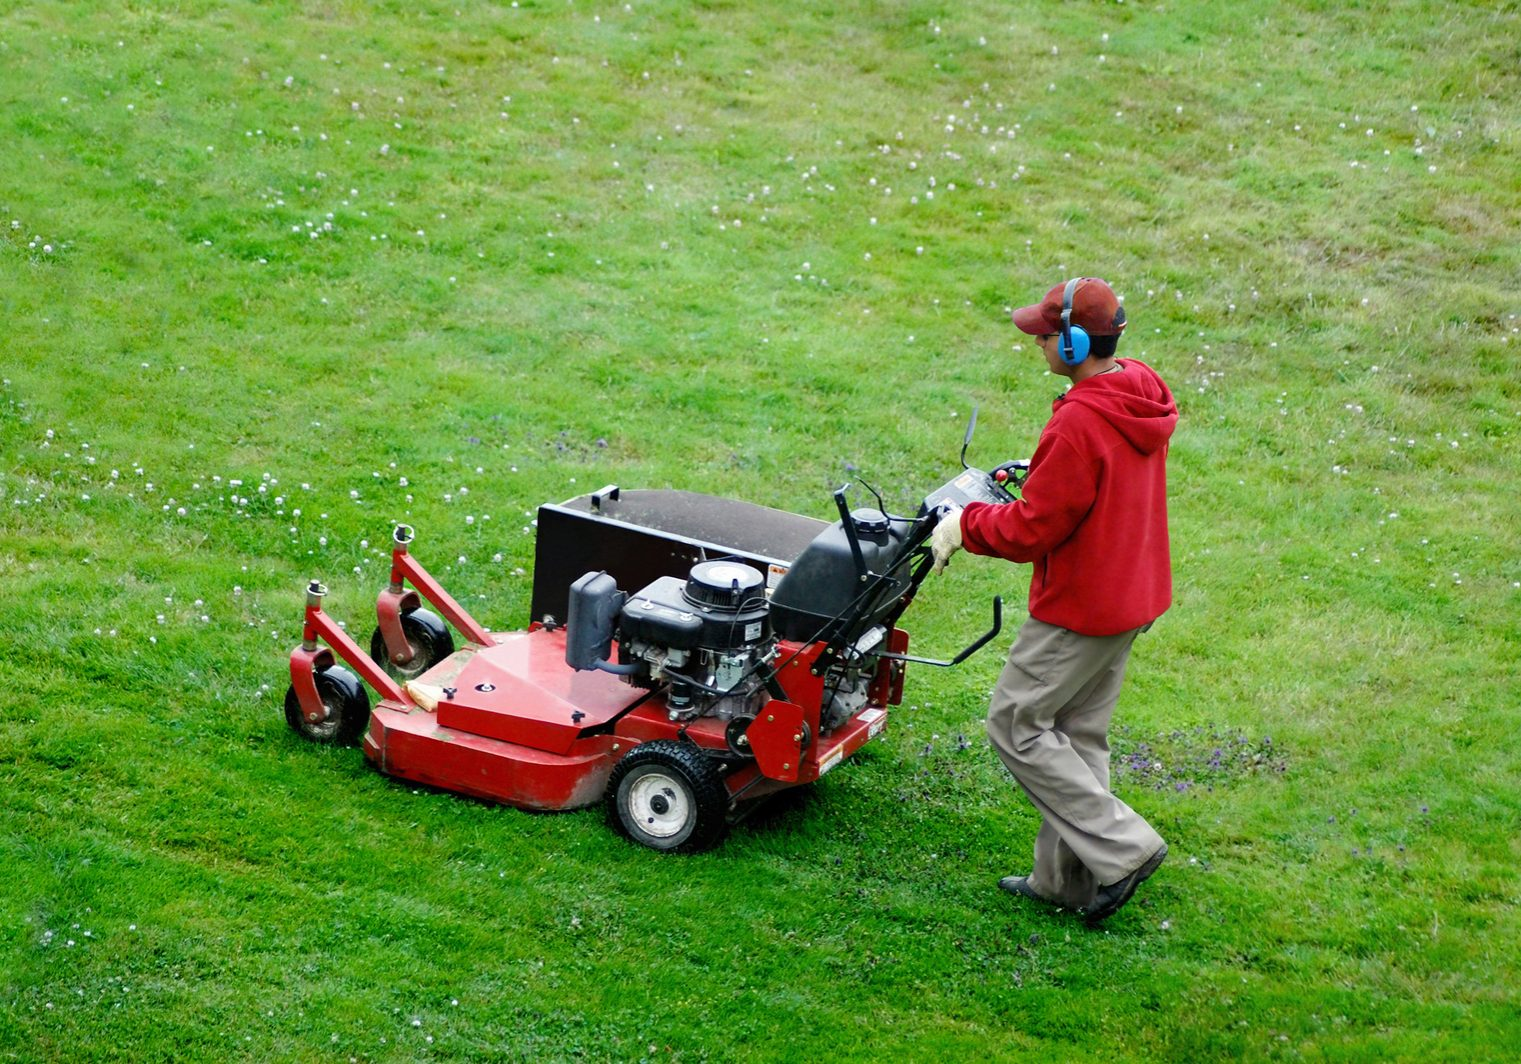 Man mowing the lawn with copy space